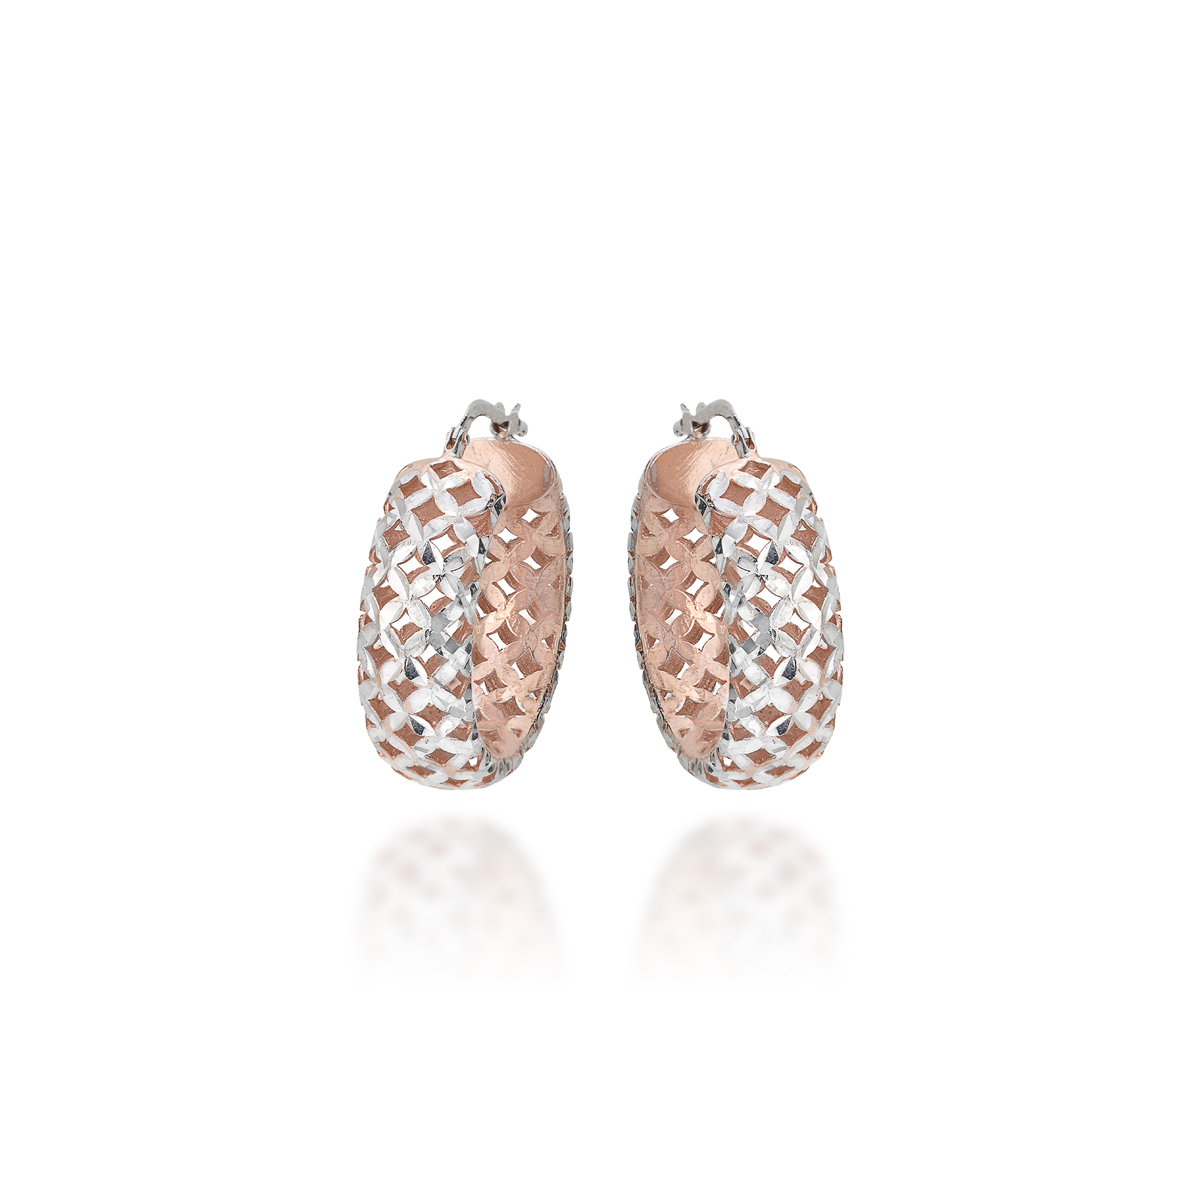 rhodium-plated rose gold Silver Earrings